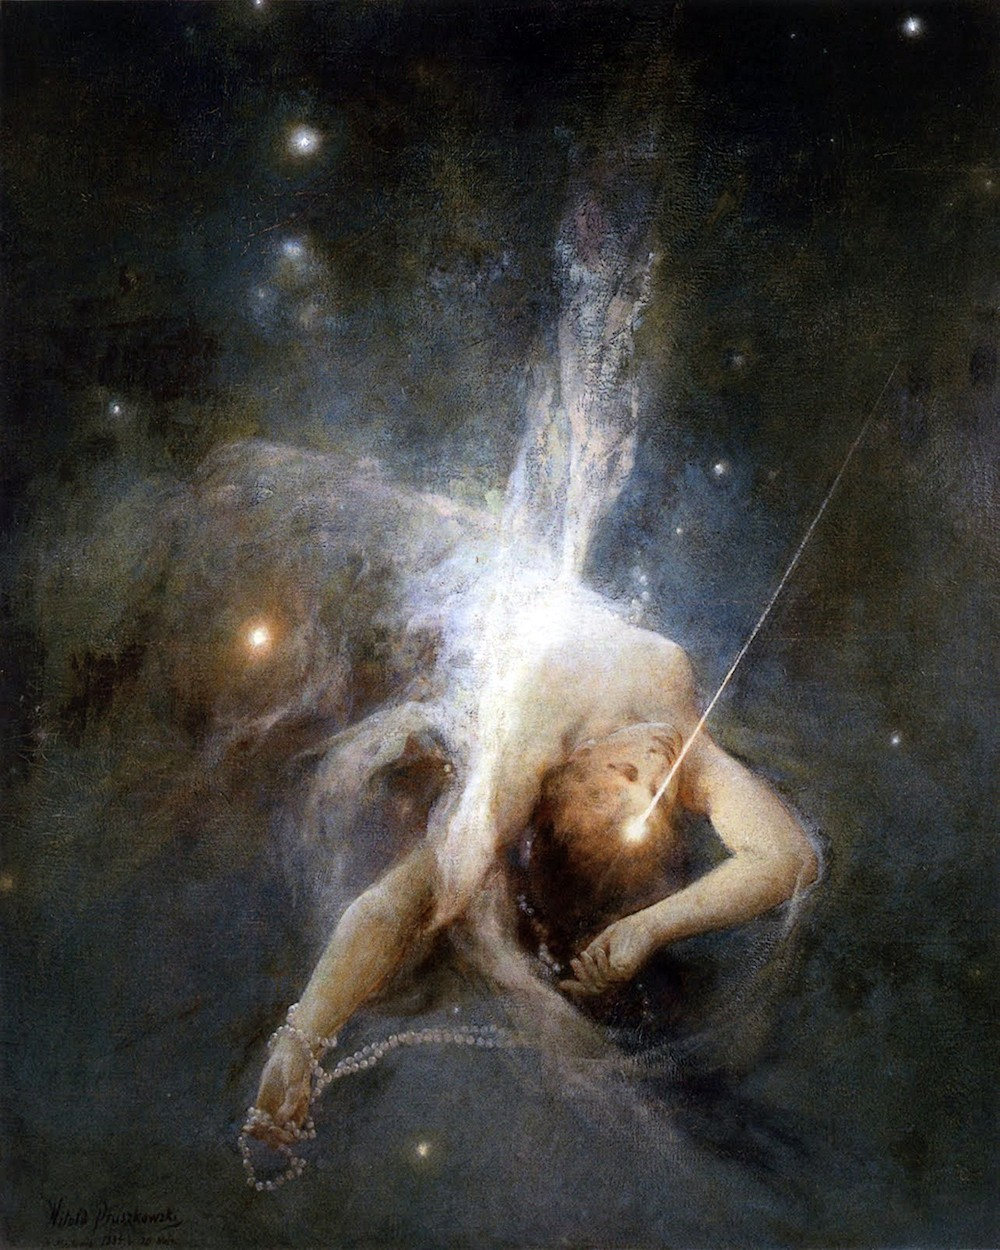 00 Witold Pruszkowski. Falling Star. 1884